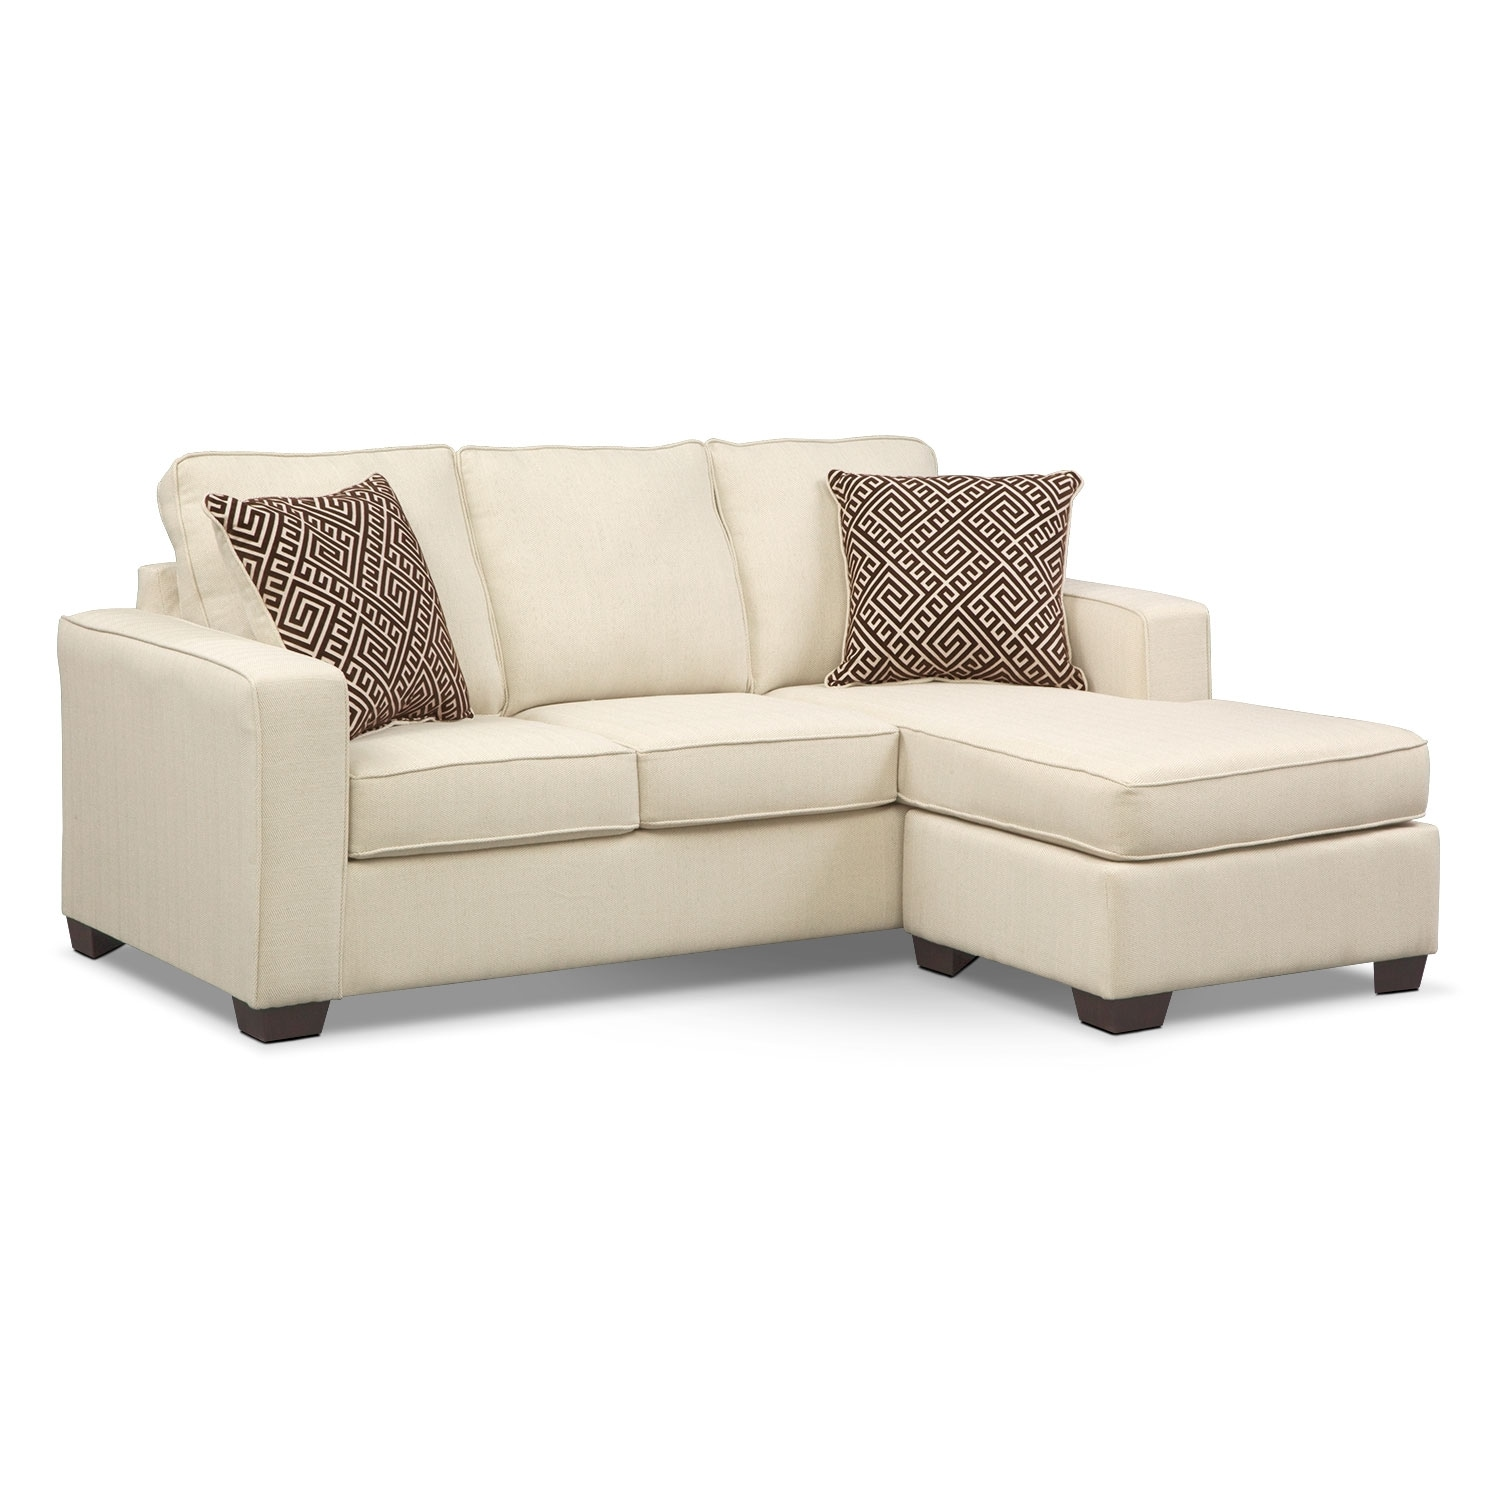 Living Room Furniture - Sterling Memory Foam Sleeper Sofa with Chaise - Beige